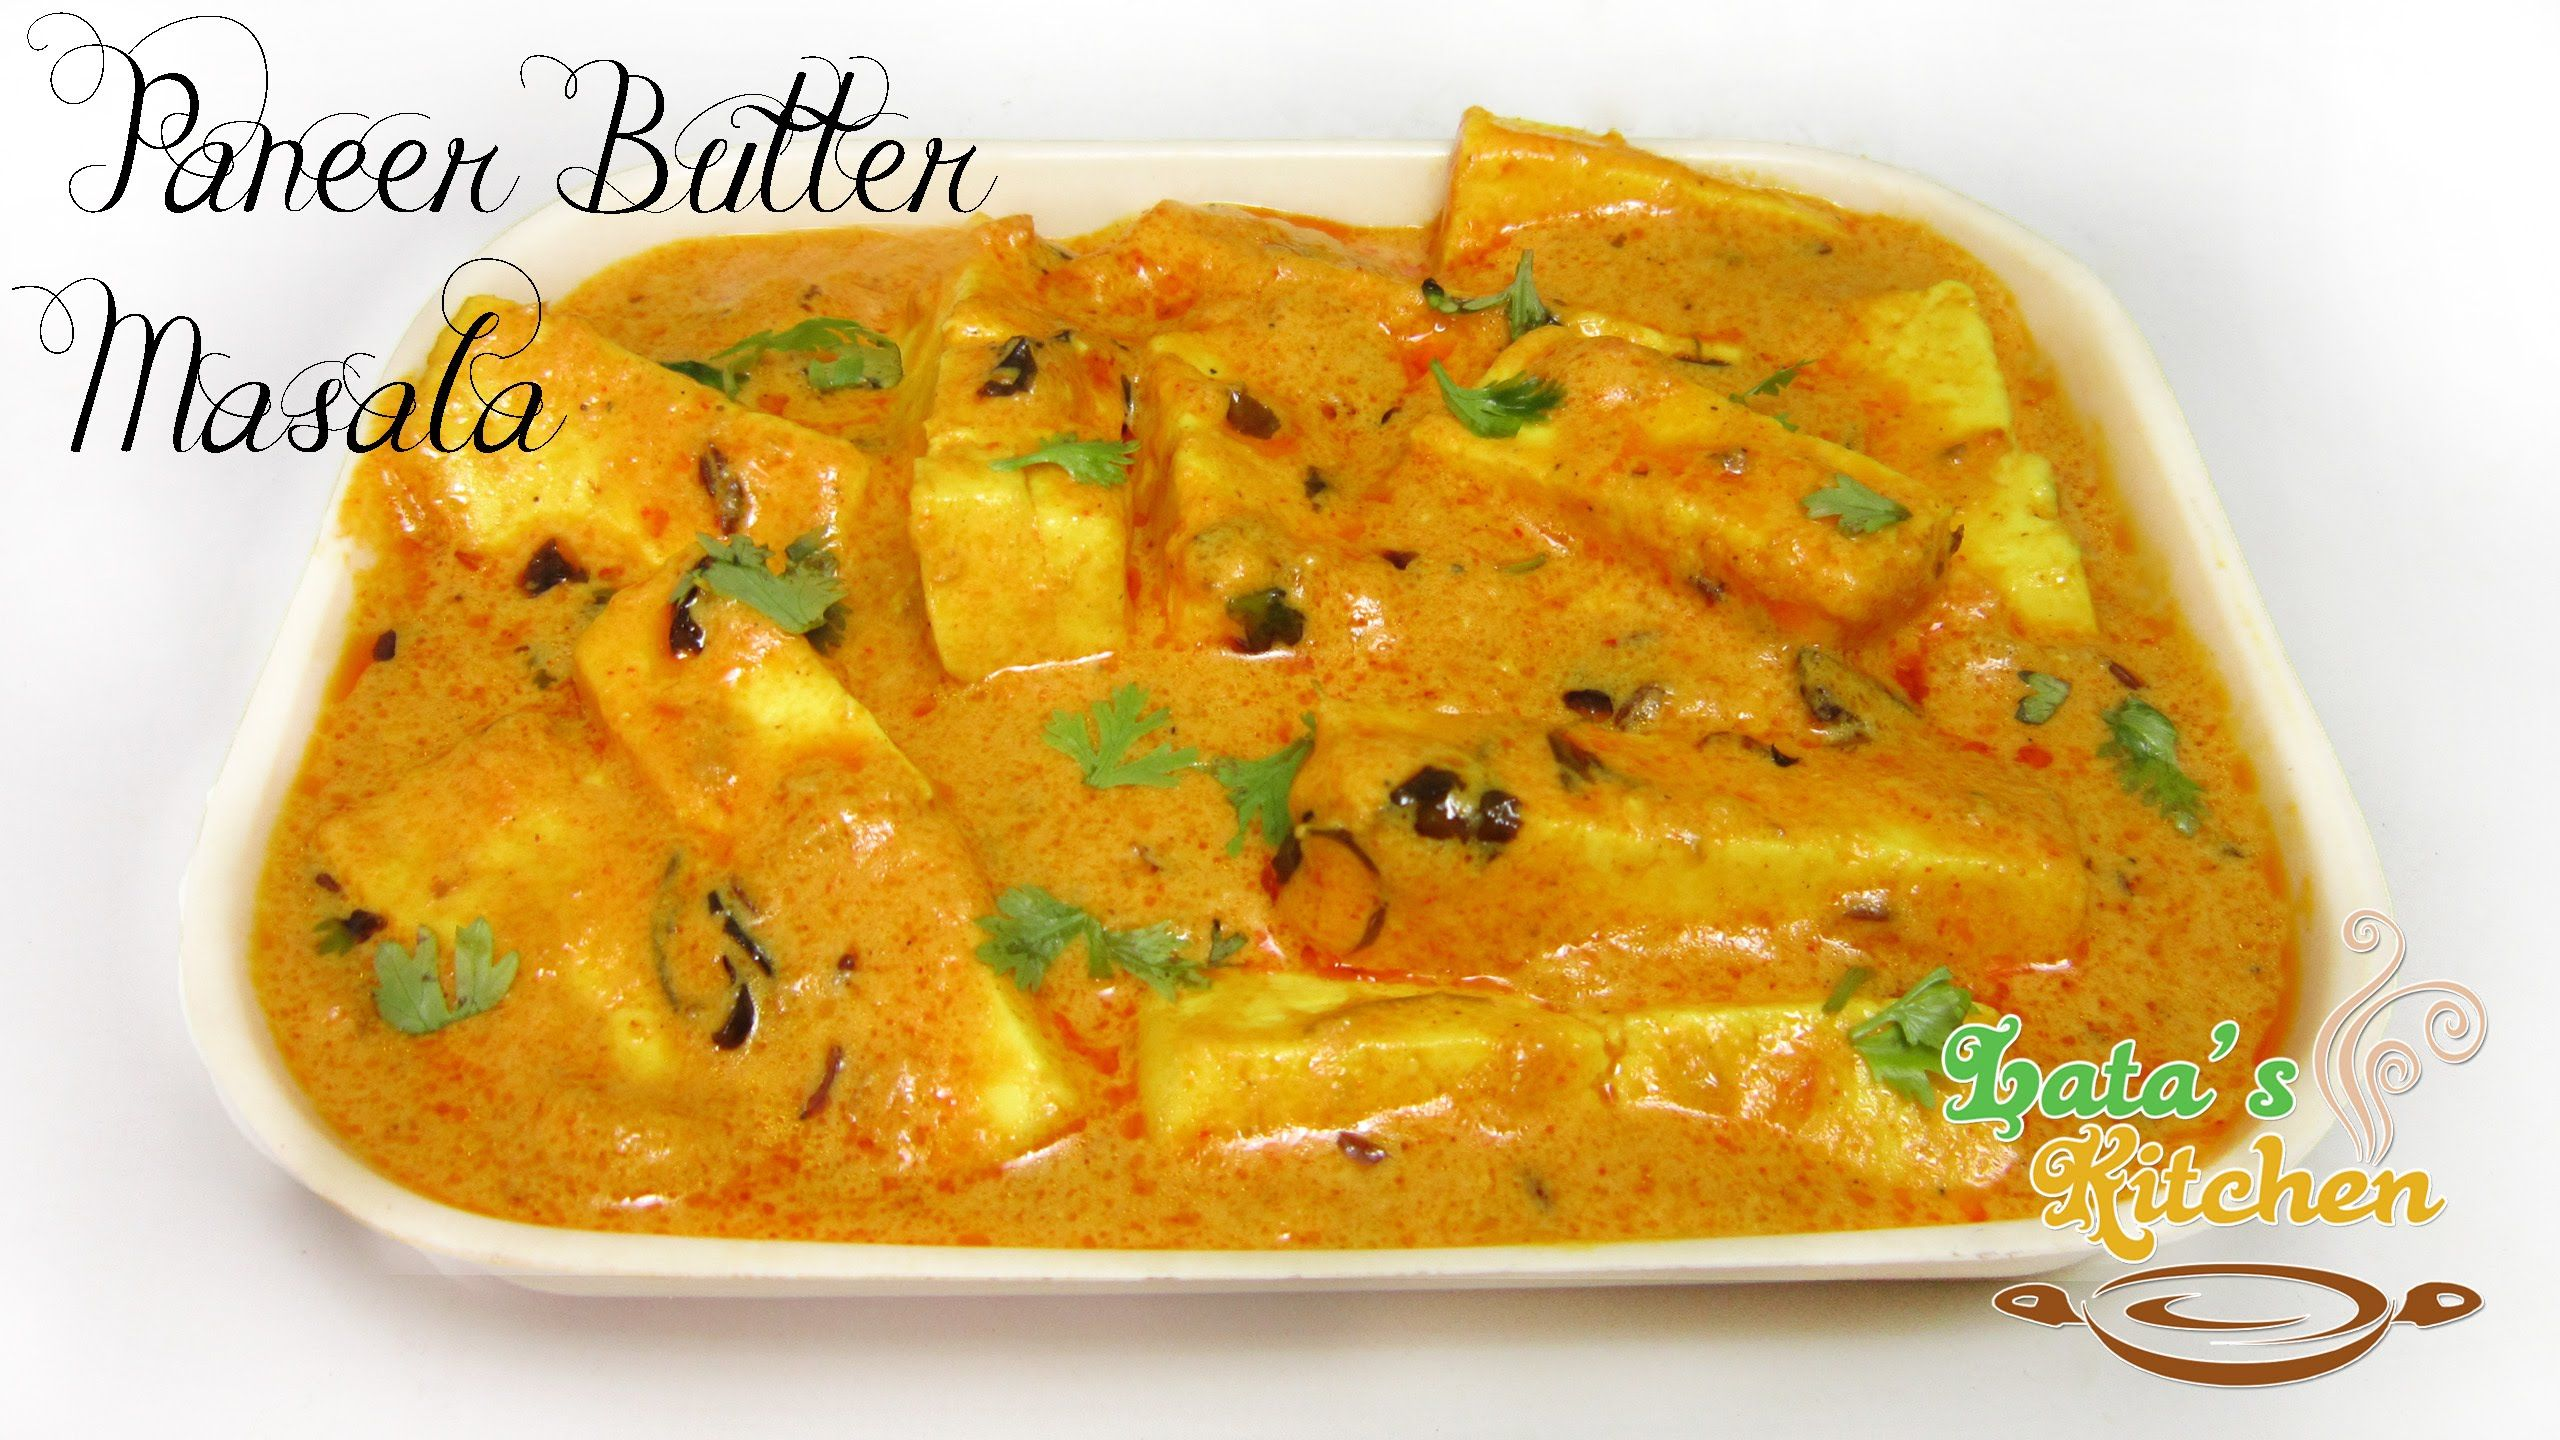 Paneer butter masala recipe indian vegetarian recipe video in paneer butter masala recipe indian vegetarian recipe video in hindi with english subtitles forumfinder Image collections